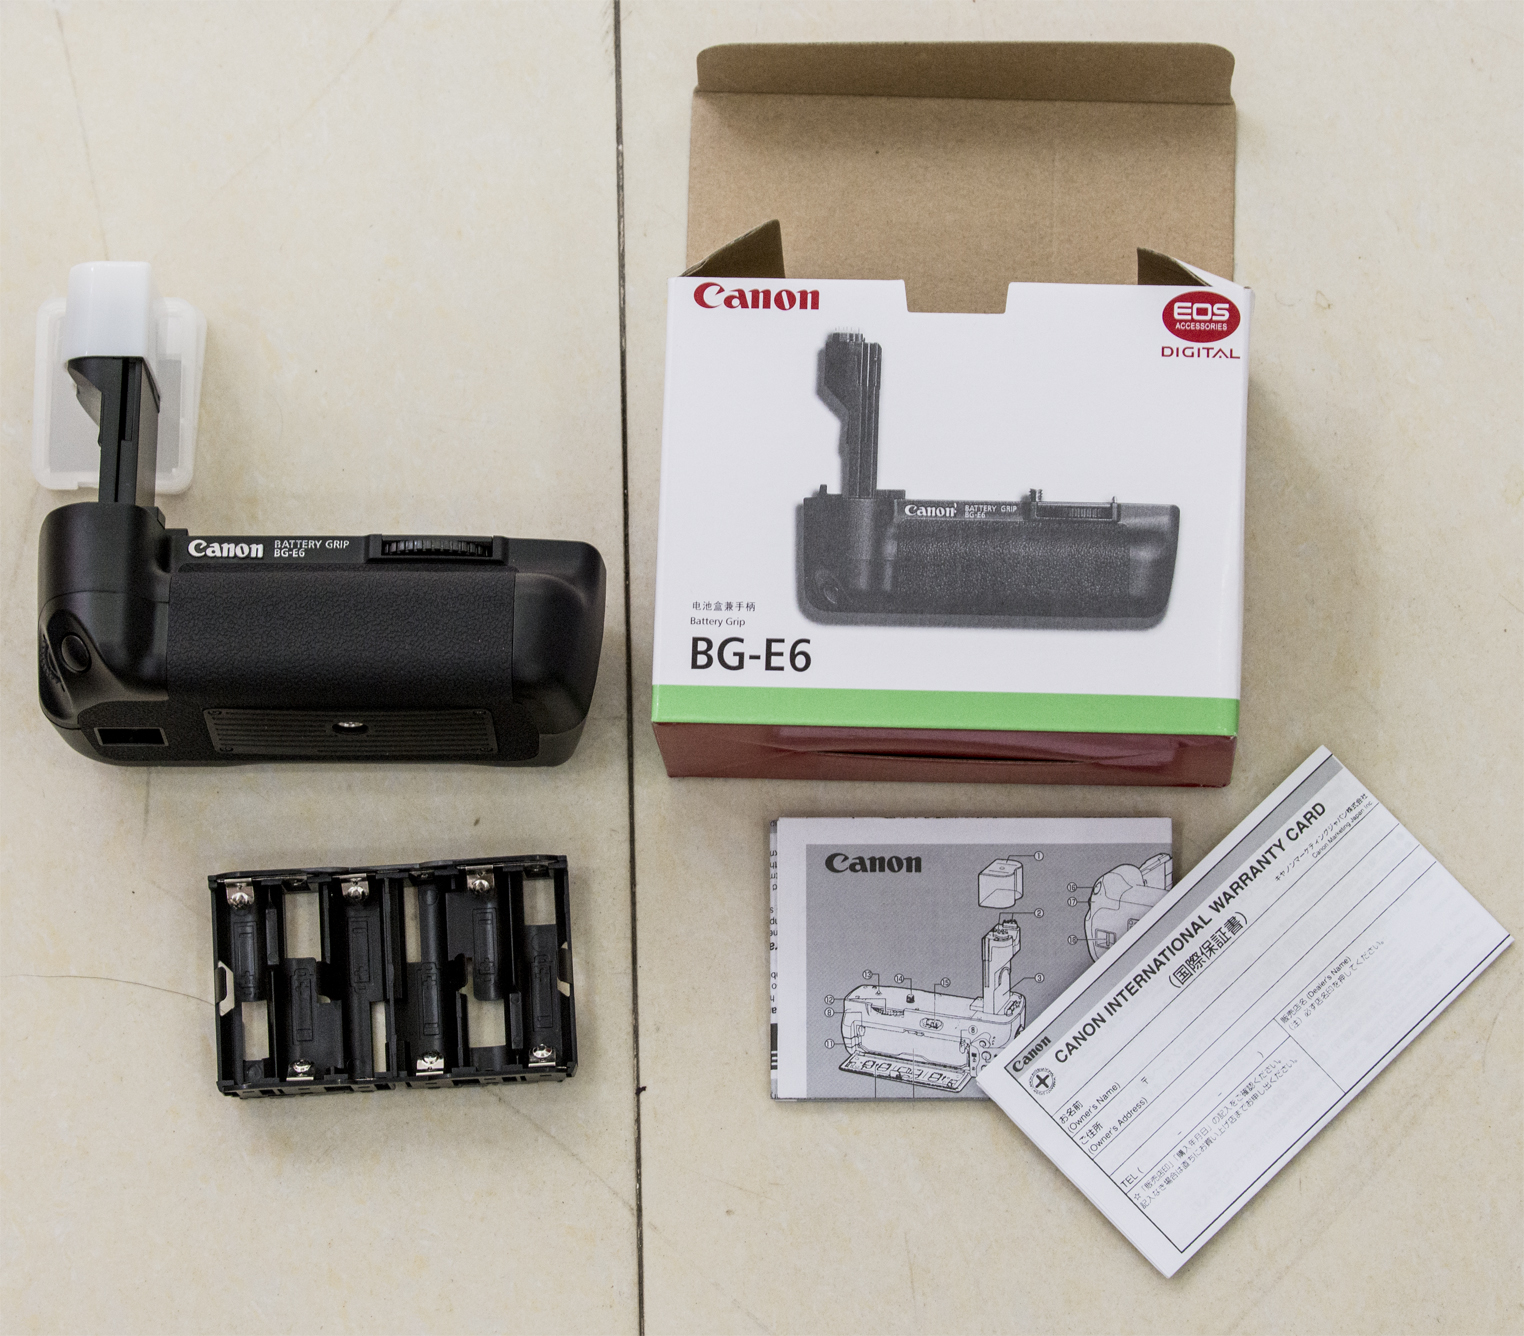 Battery Grip BG-E6 for Canon 5D Mark II